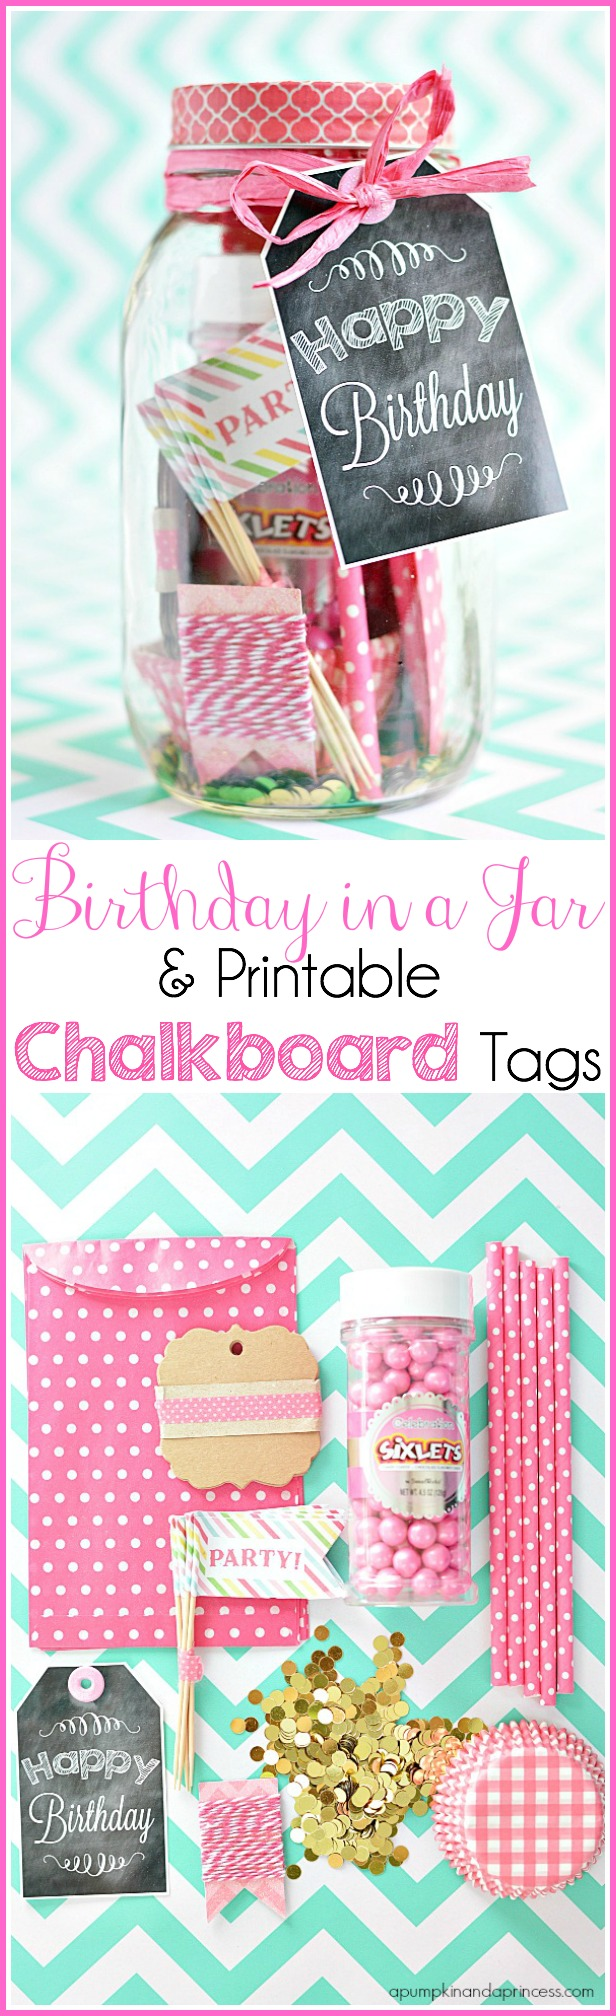 Mason Jar Gift + Printable Chalkboard Birthday Tags